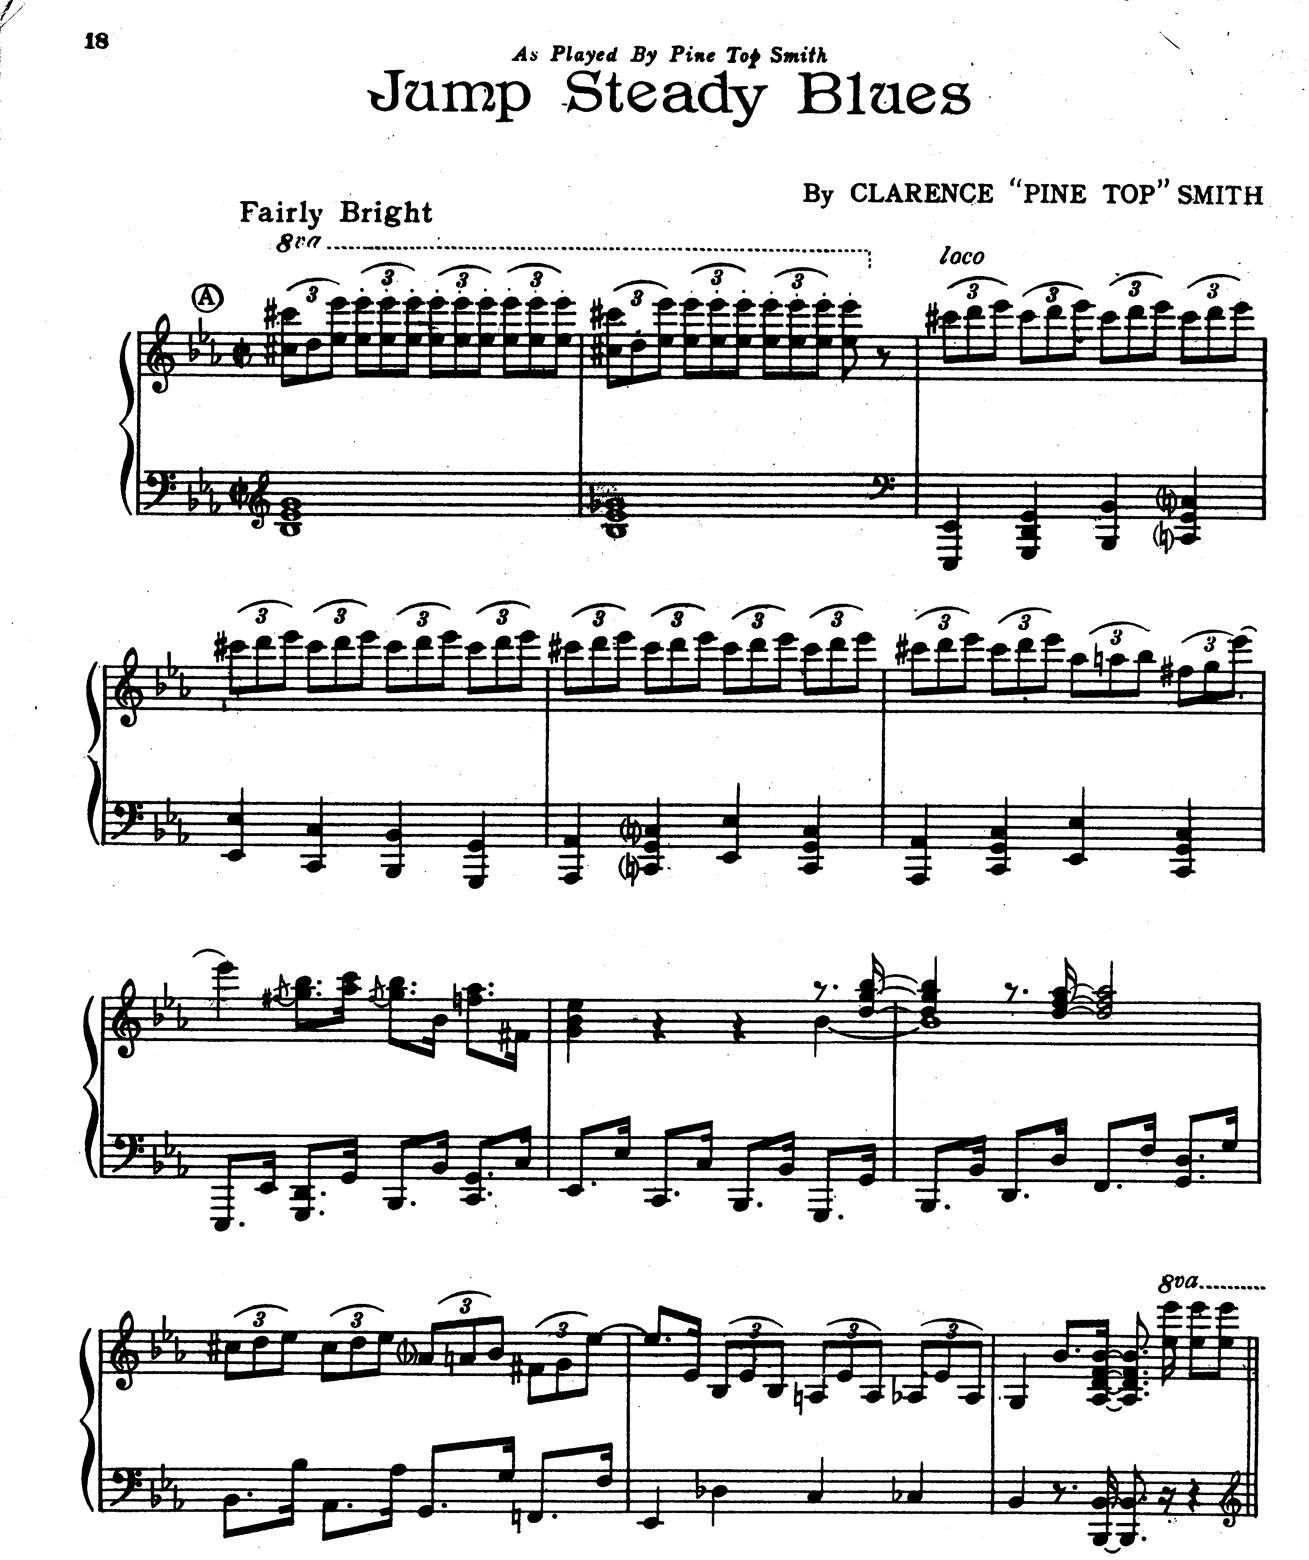 Learning Blues Piano From Music Score: Pops Coffee's Traditional Jazz: Post 210: PLAYING BOOGIE WOOGIE